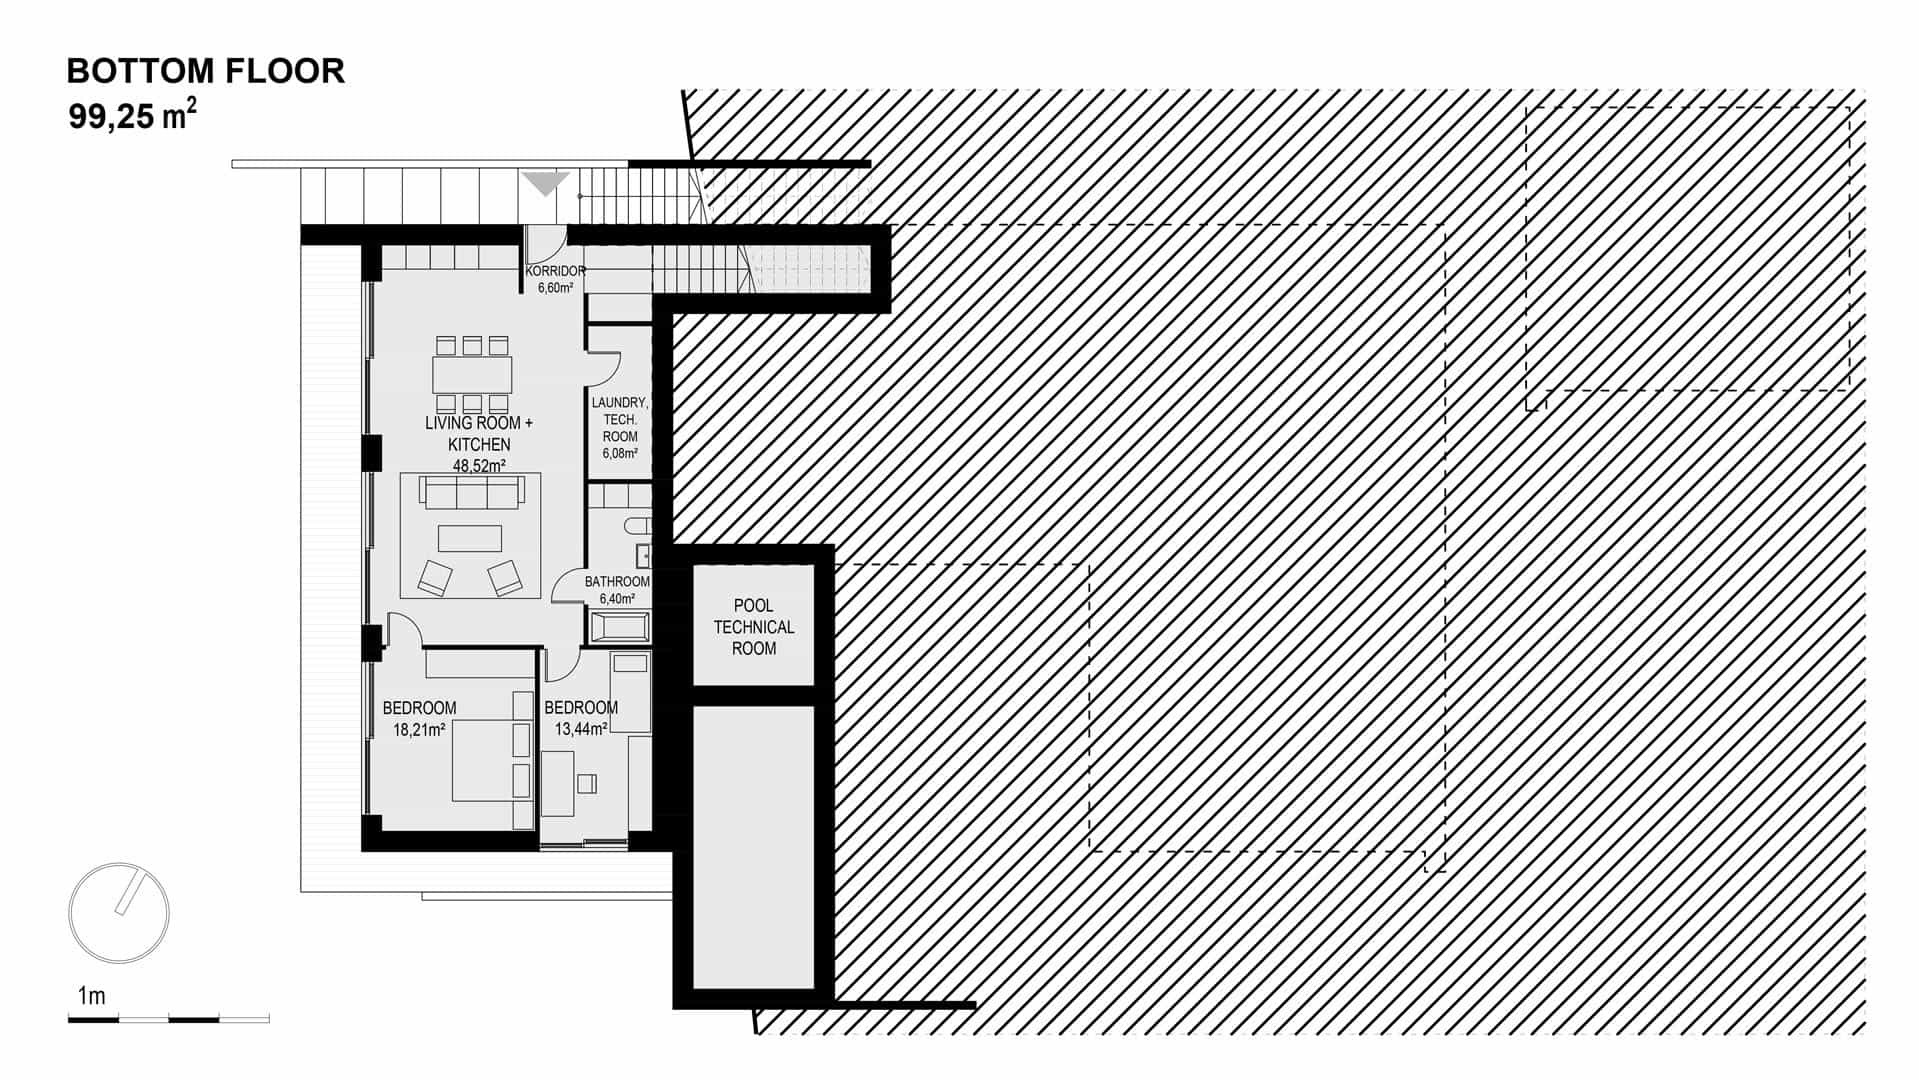 Bottom floor predominantly with bedrooms